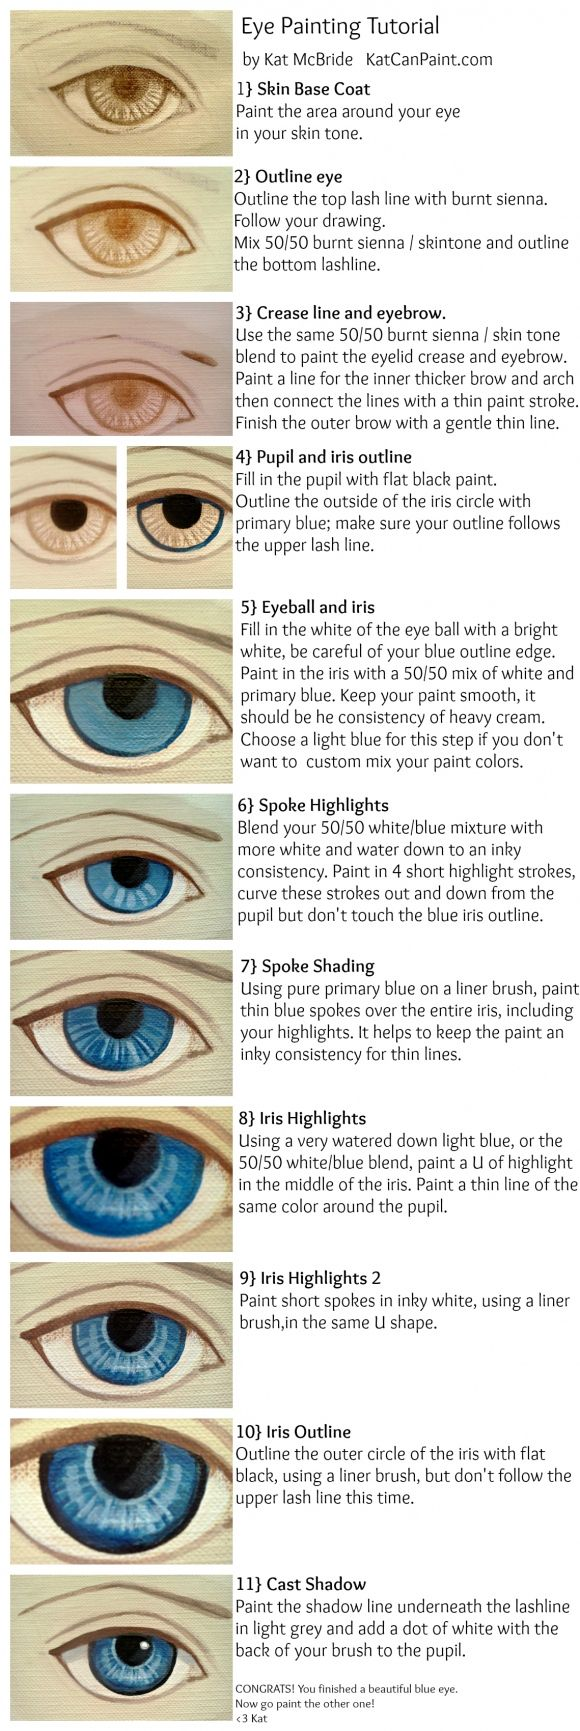 Eye painting tutorial via katcanpaint.com